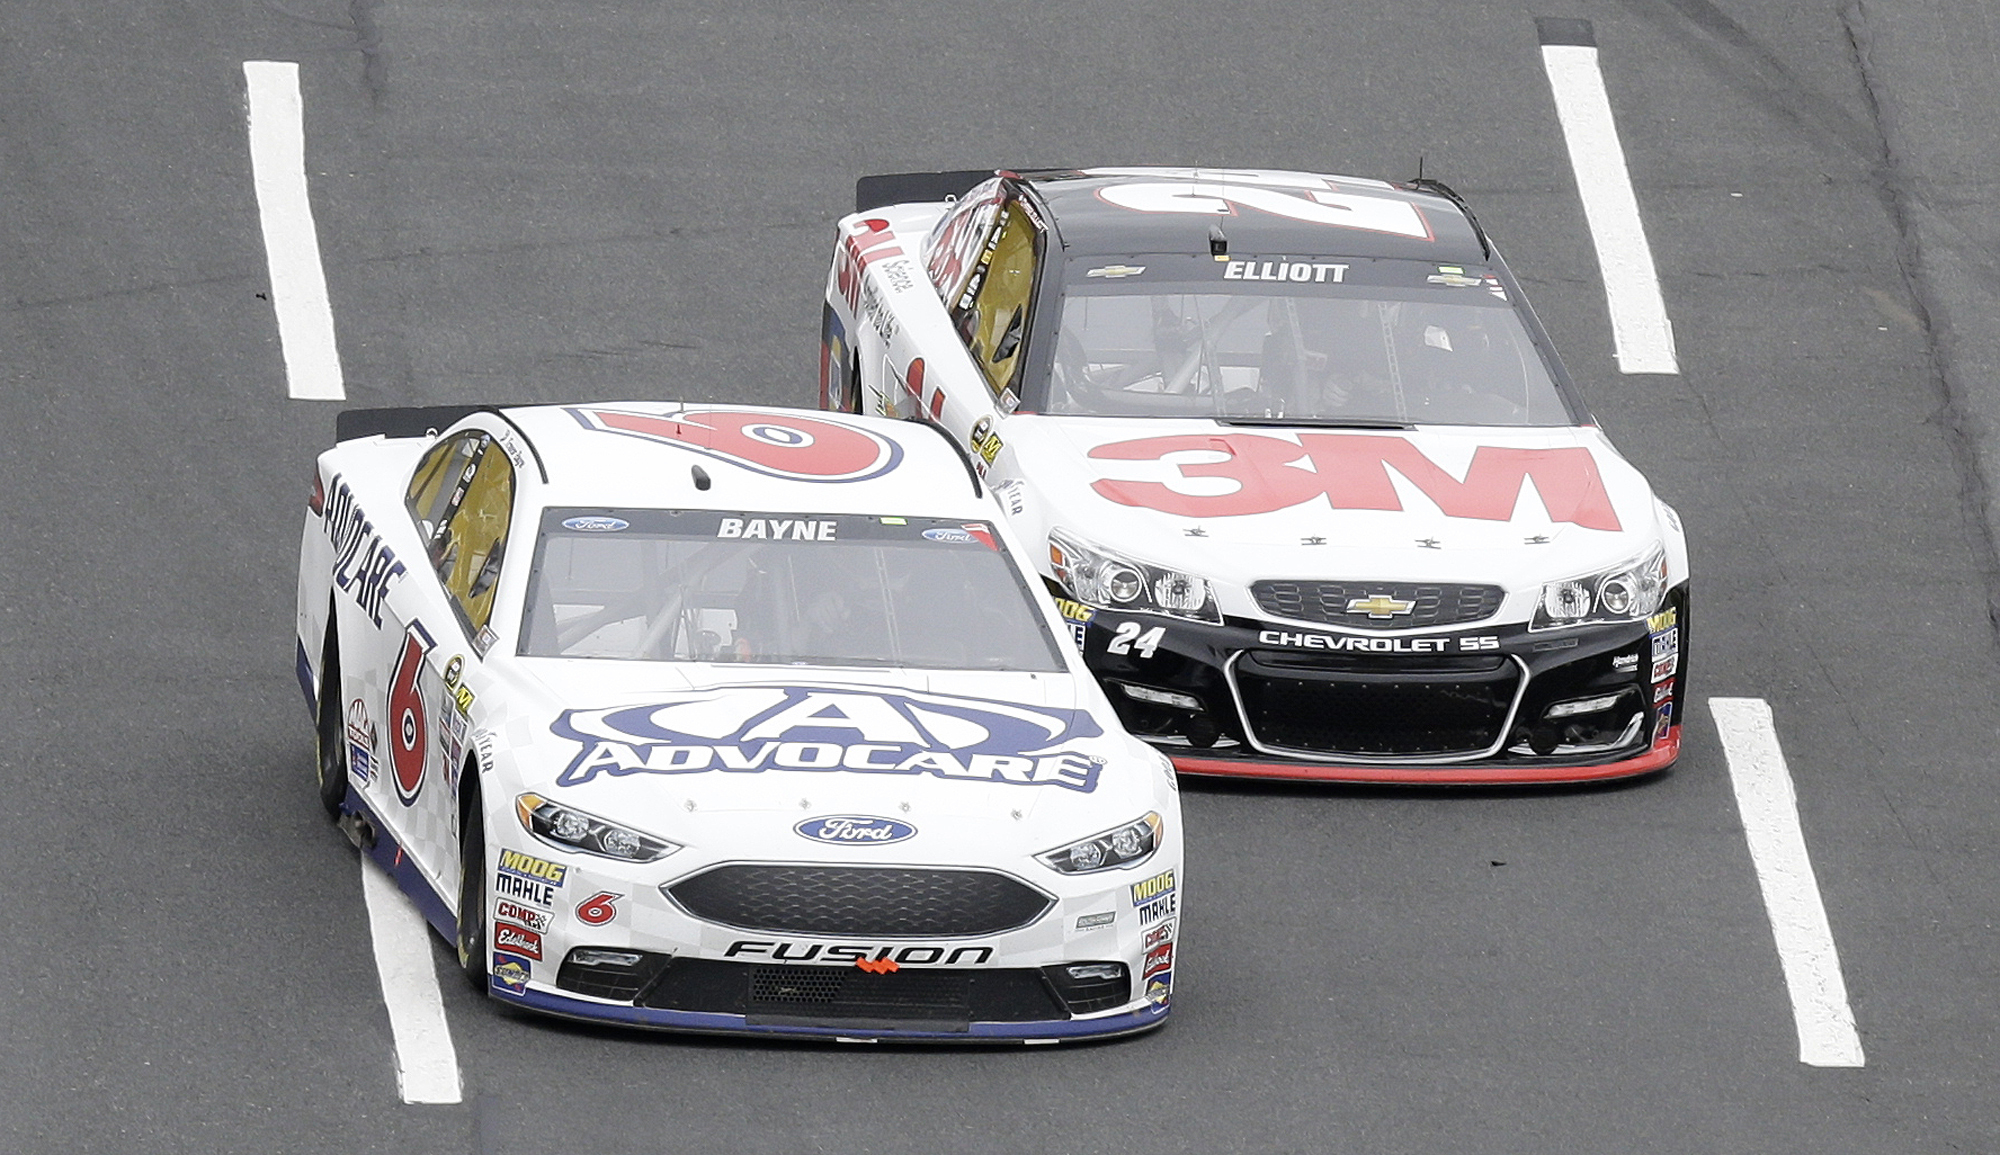 CORRECTS DATE - Trevor Bayne (6) and Chase Elliott (24) race during the NASCAR Sprint Cup Series Showdown auto race at the Charlotte Motor Speedway in Concord, N.C., Saturday, May 21, 2016. (AP Photo/Gerry Broome)